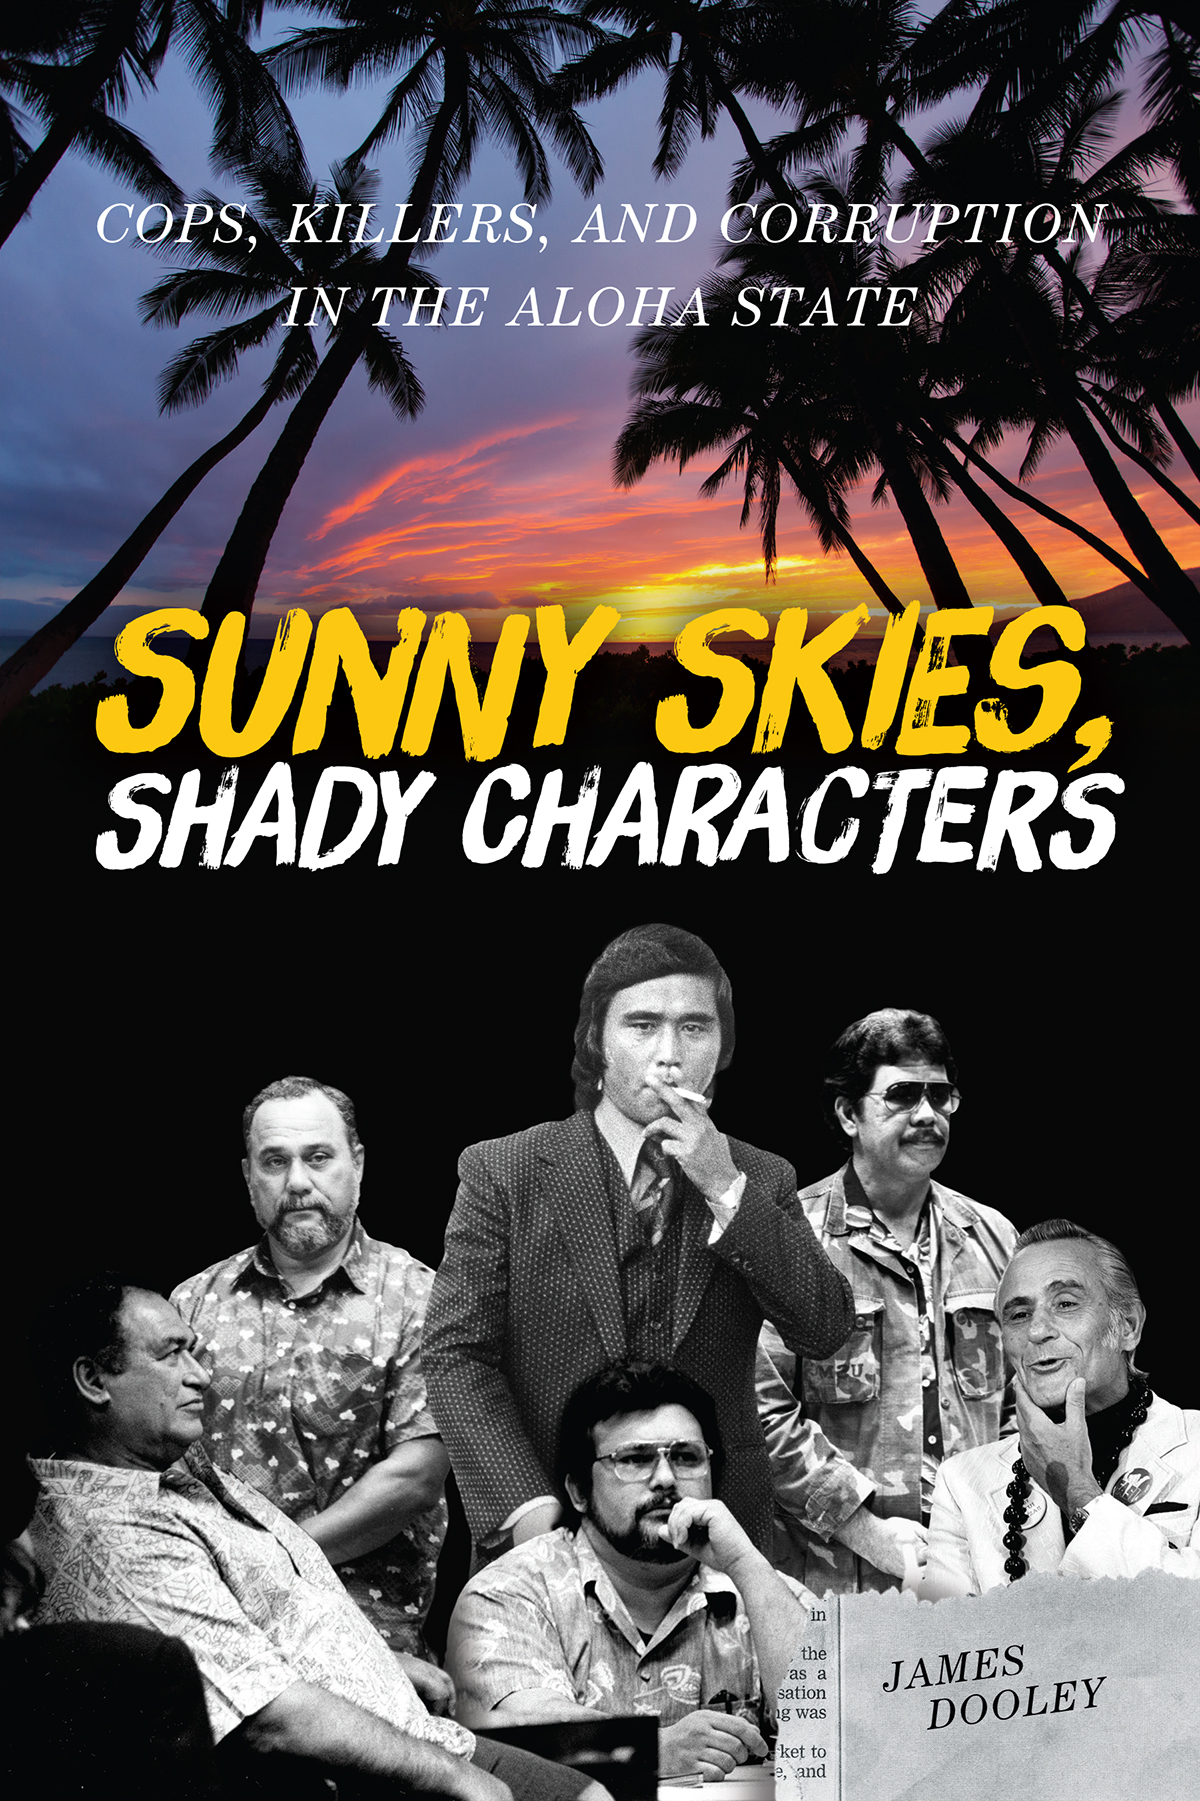 James Dooleys Sunny Skies Shady Characters Triggers Memories And Discussion